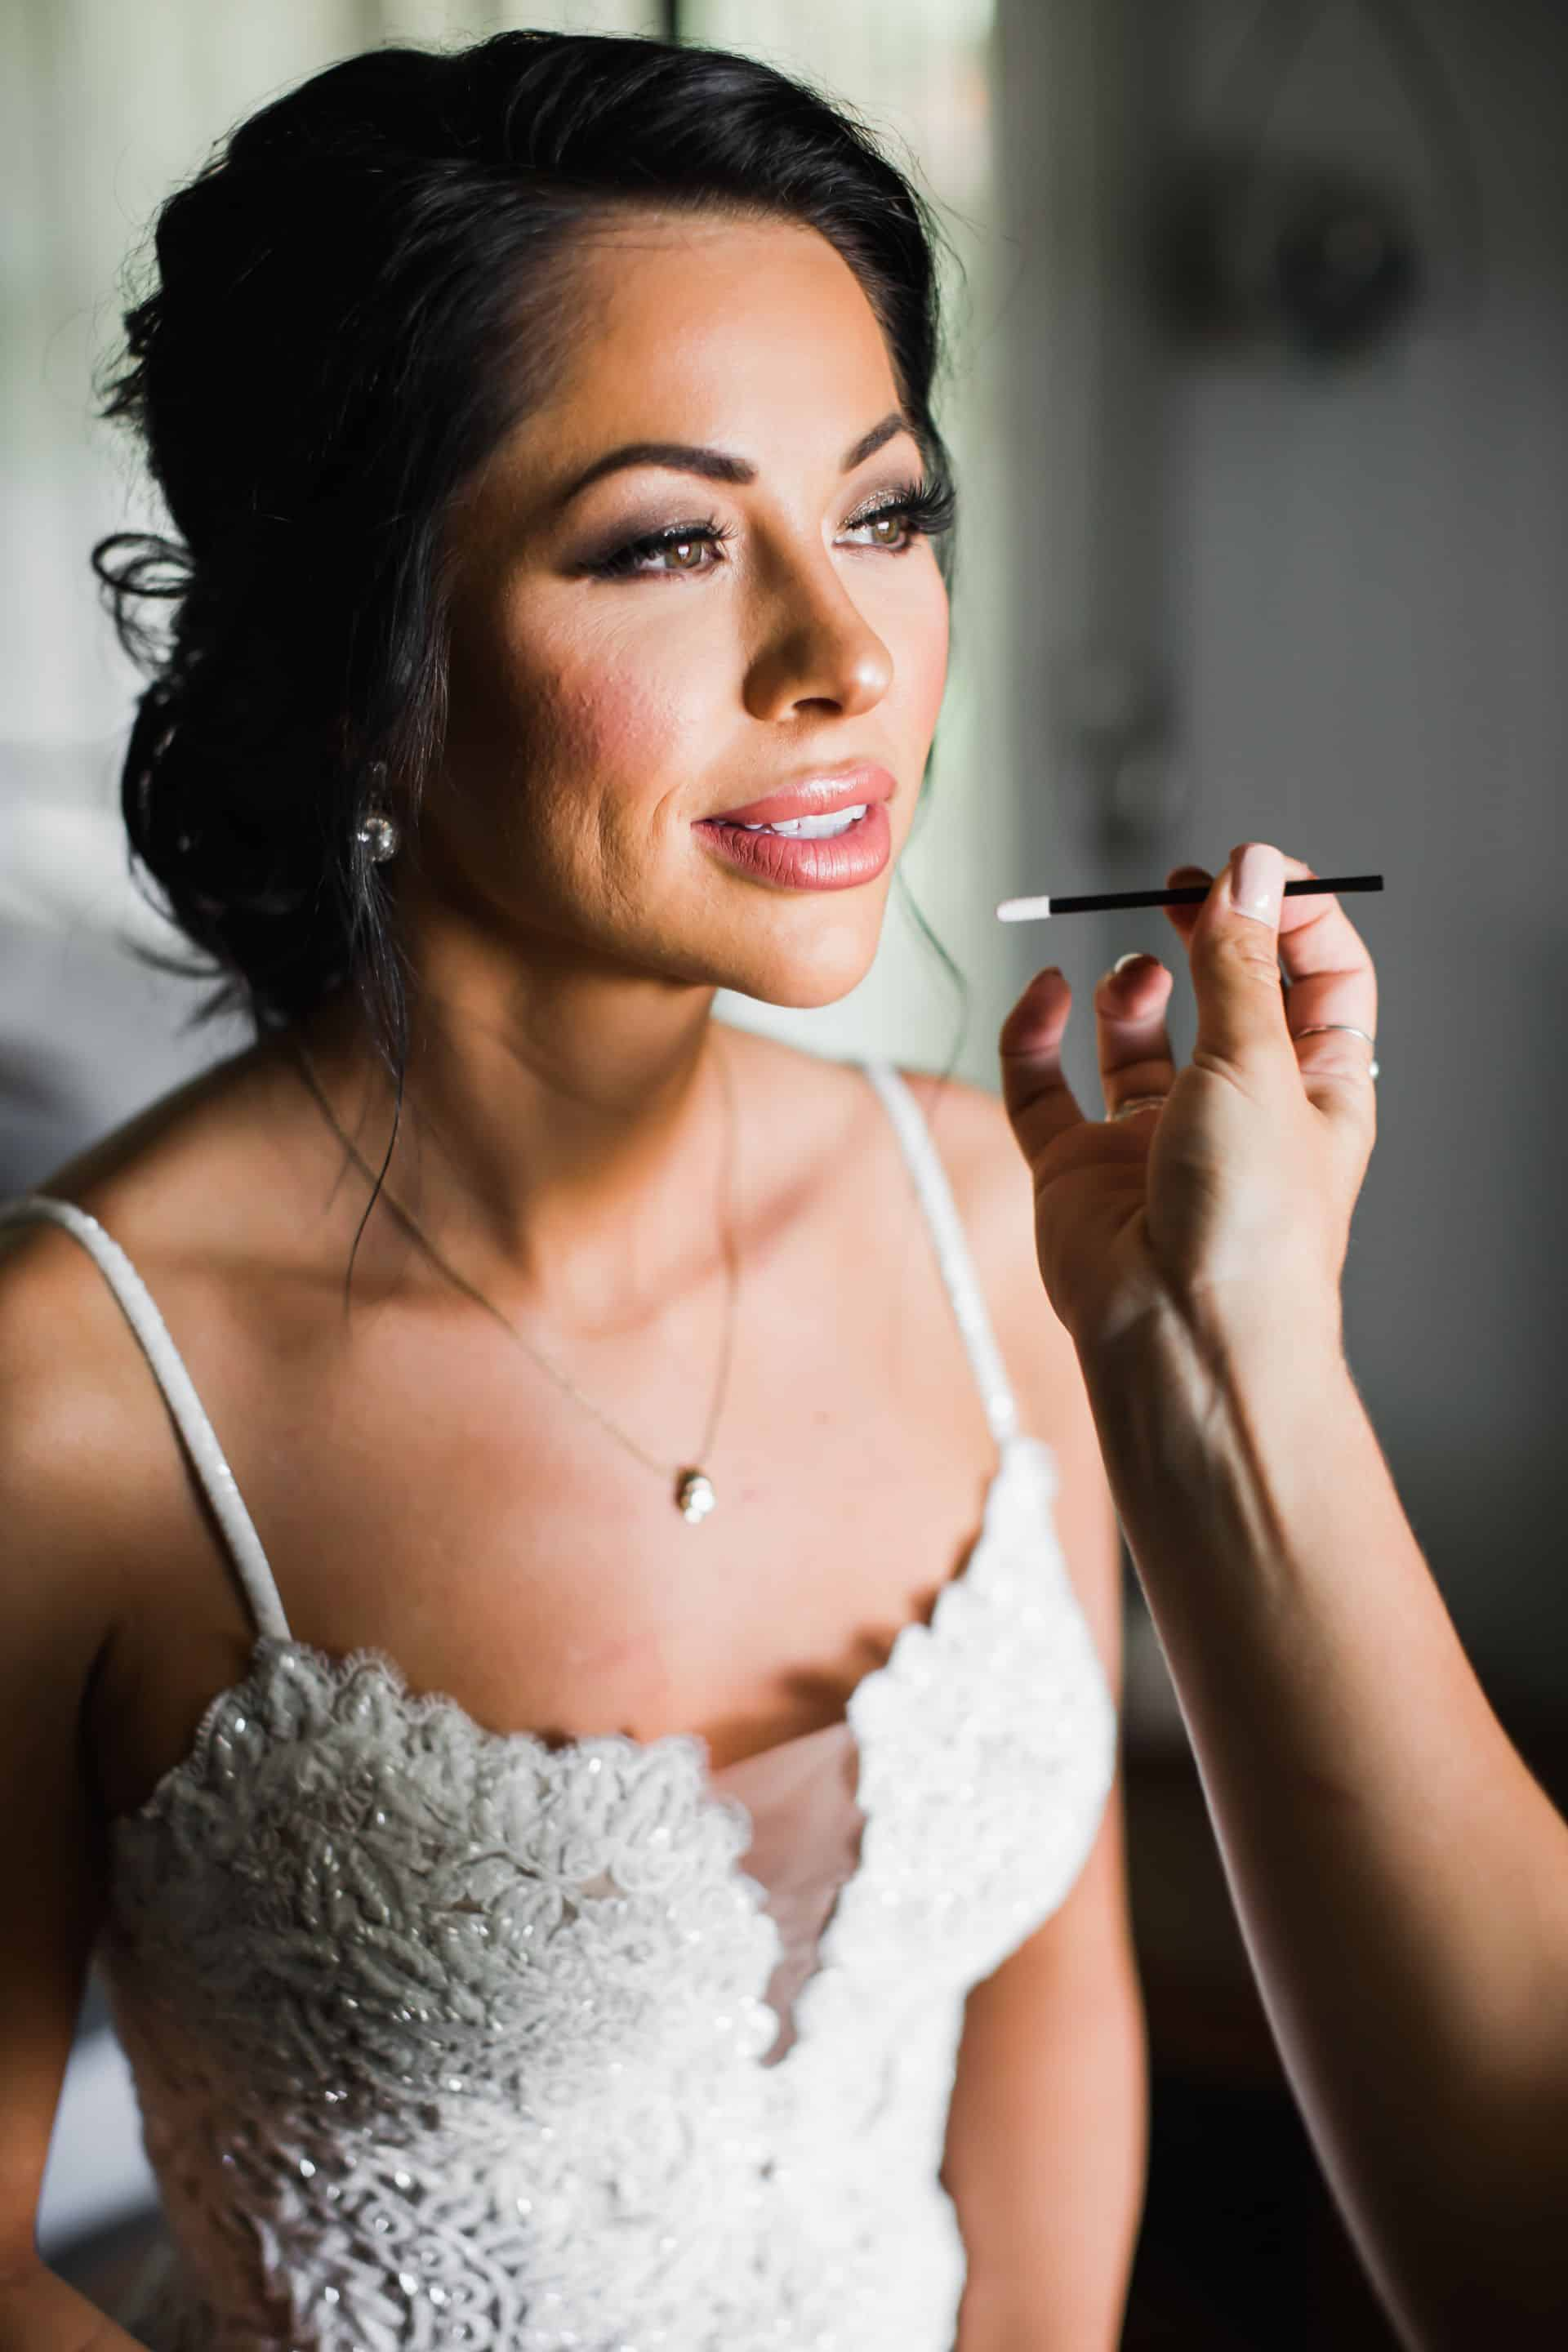 Getting ready bridal makeup | Maui's Angels